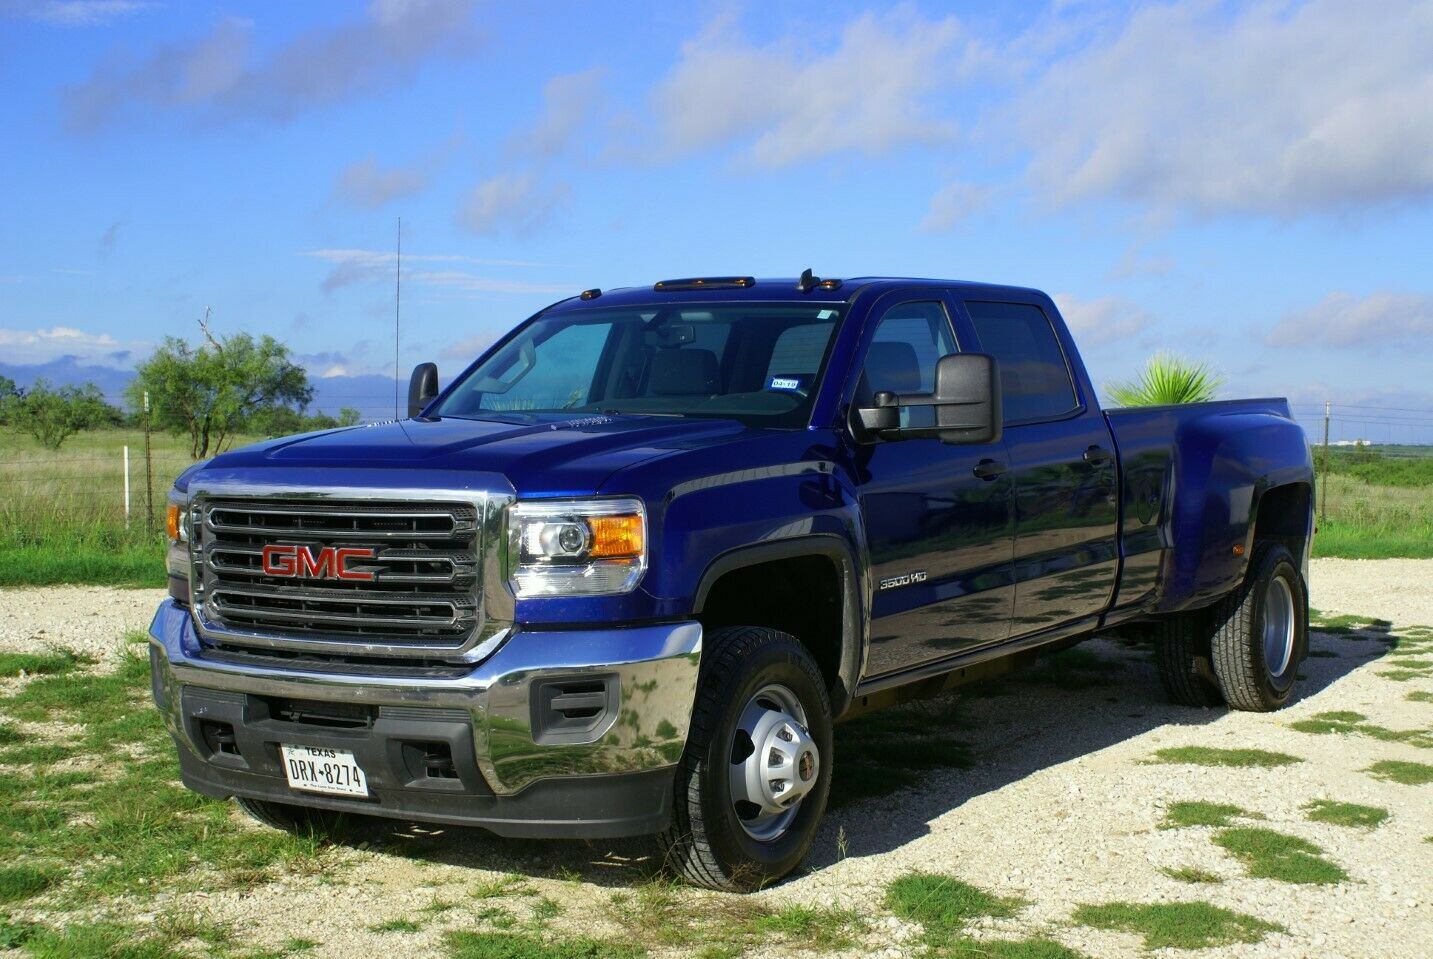 low mileage 2015 GMC Sierra 3500 lifted for sale